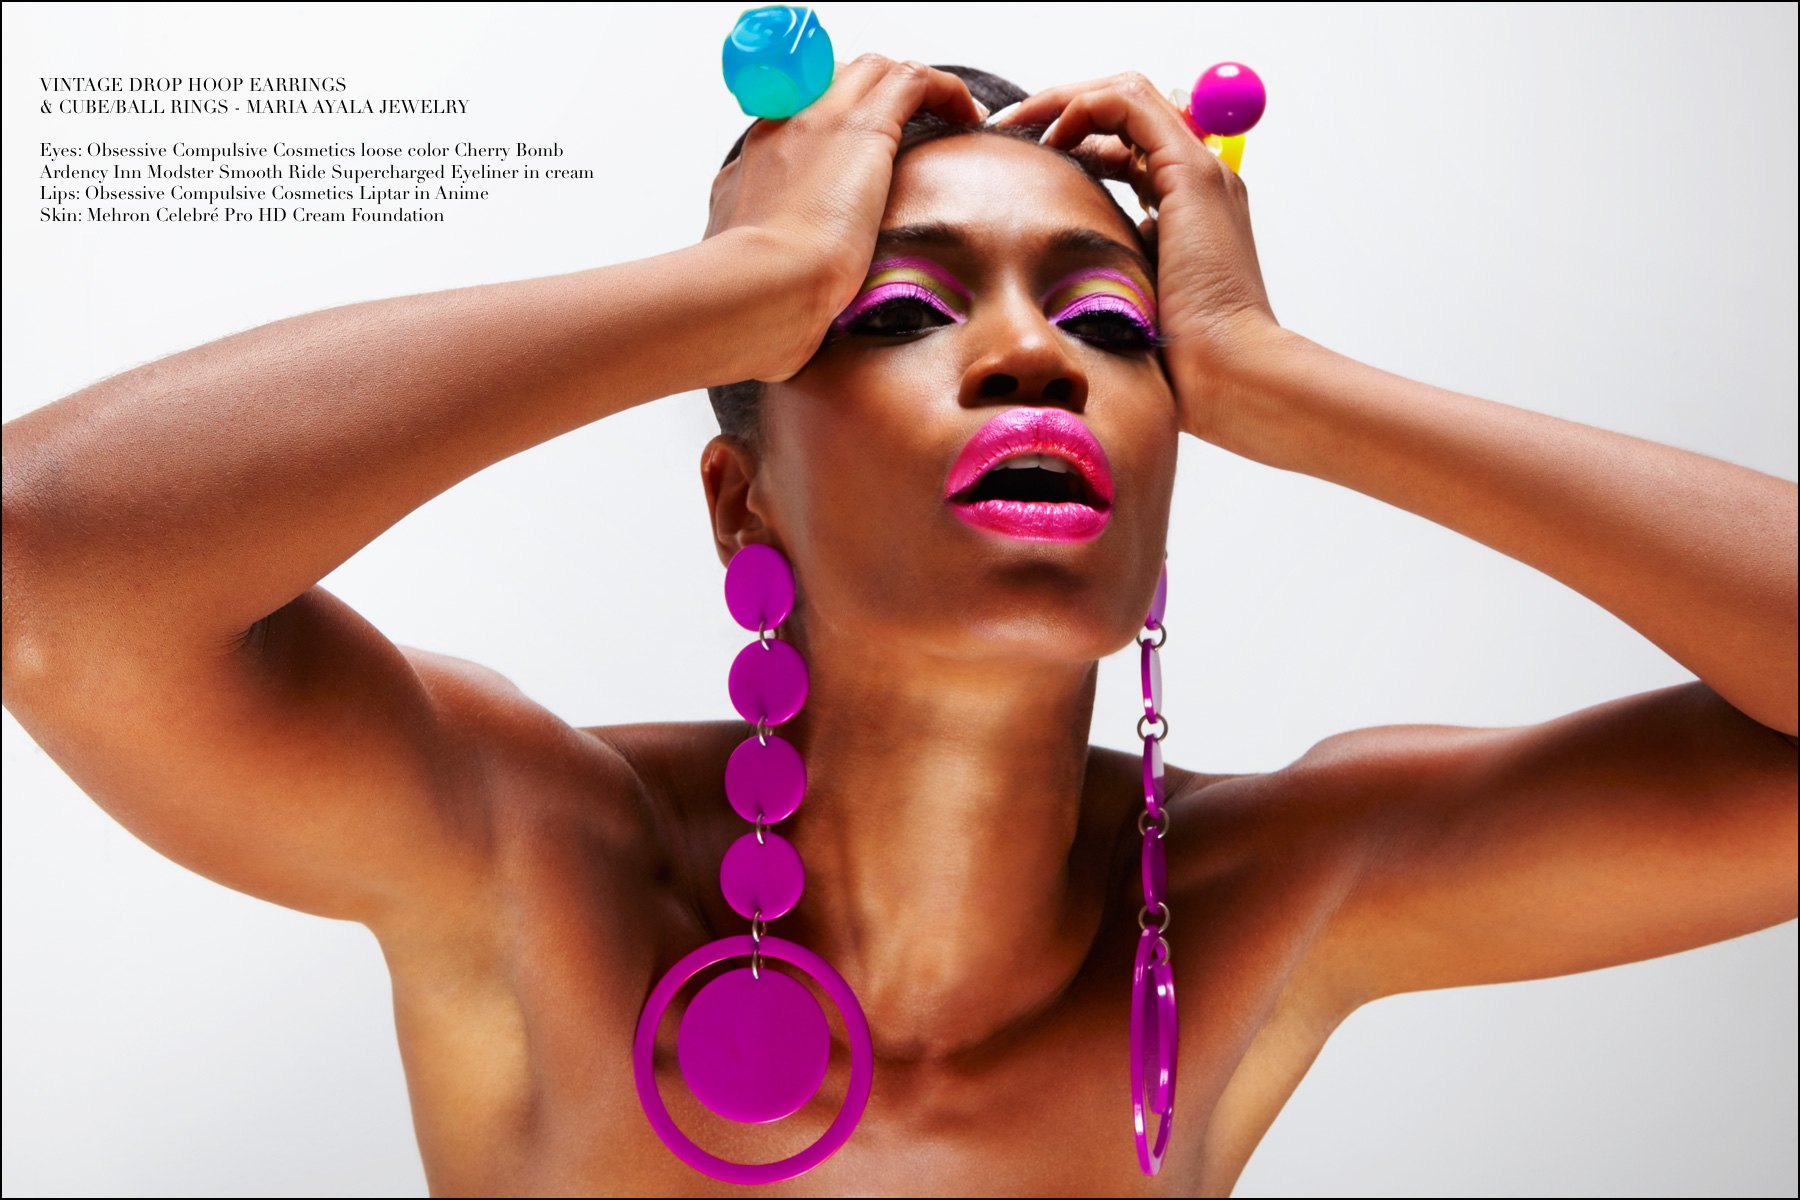 Dramatic purple hoops and oversized plastic rings modeled by Christina Anderson-McDonald, designed by Maria Ayala. Photography by Alexander Thompson for Ponyboy magazine NY.